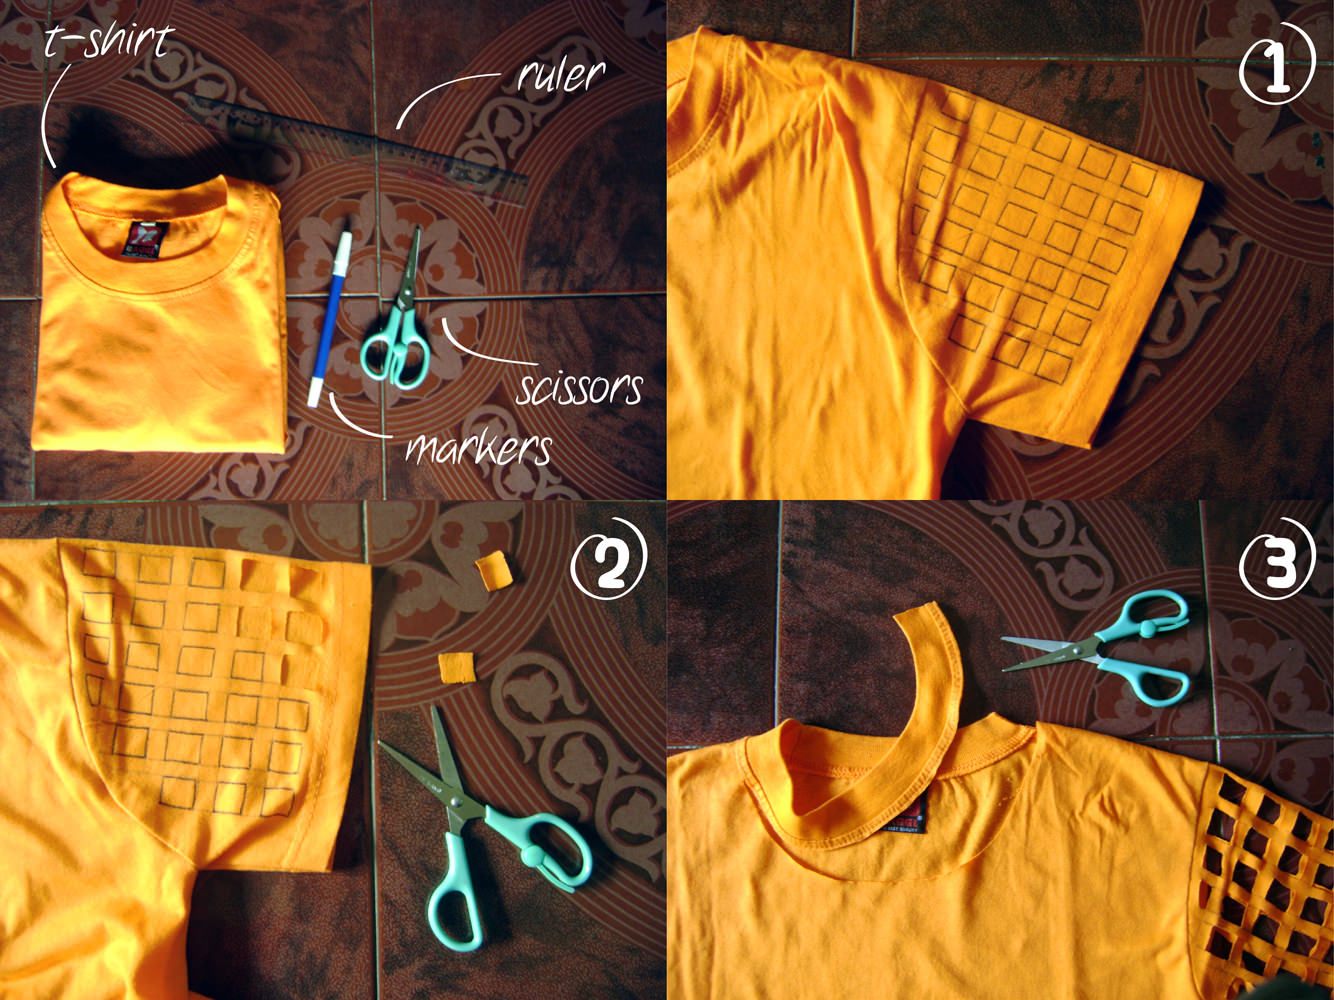 how to make your own cut t-shirt